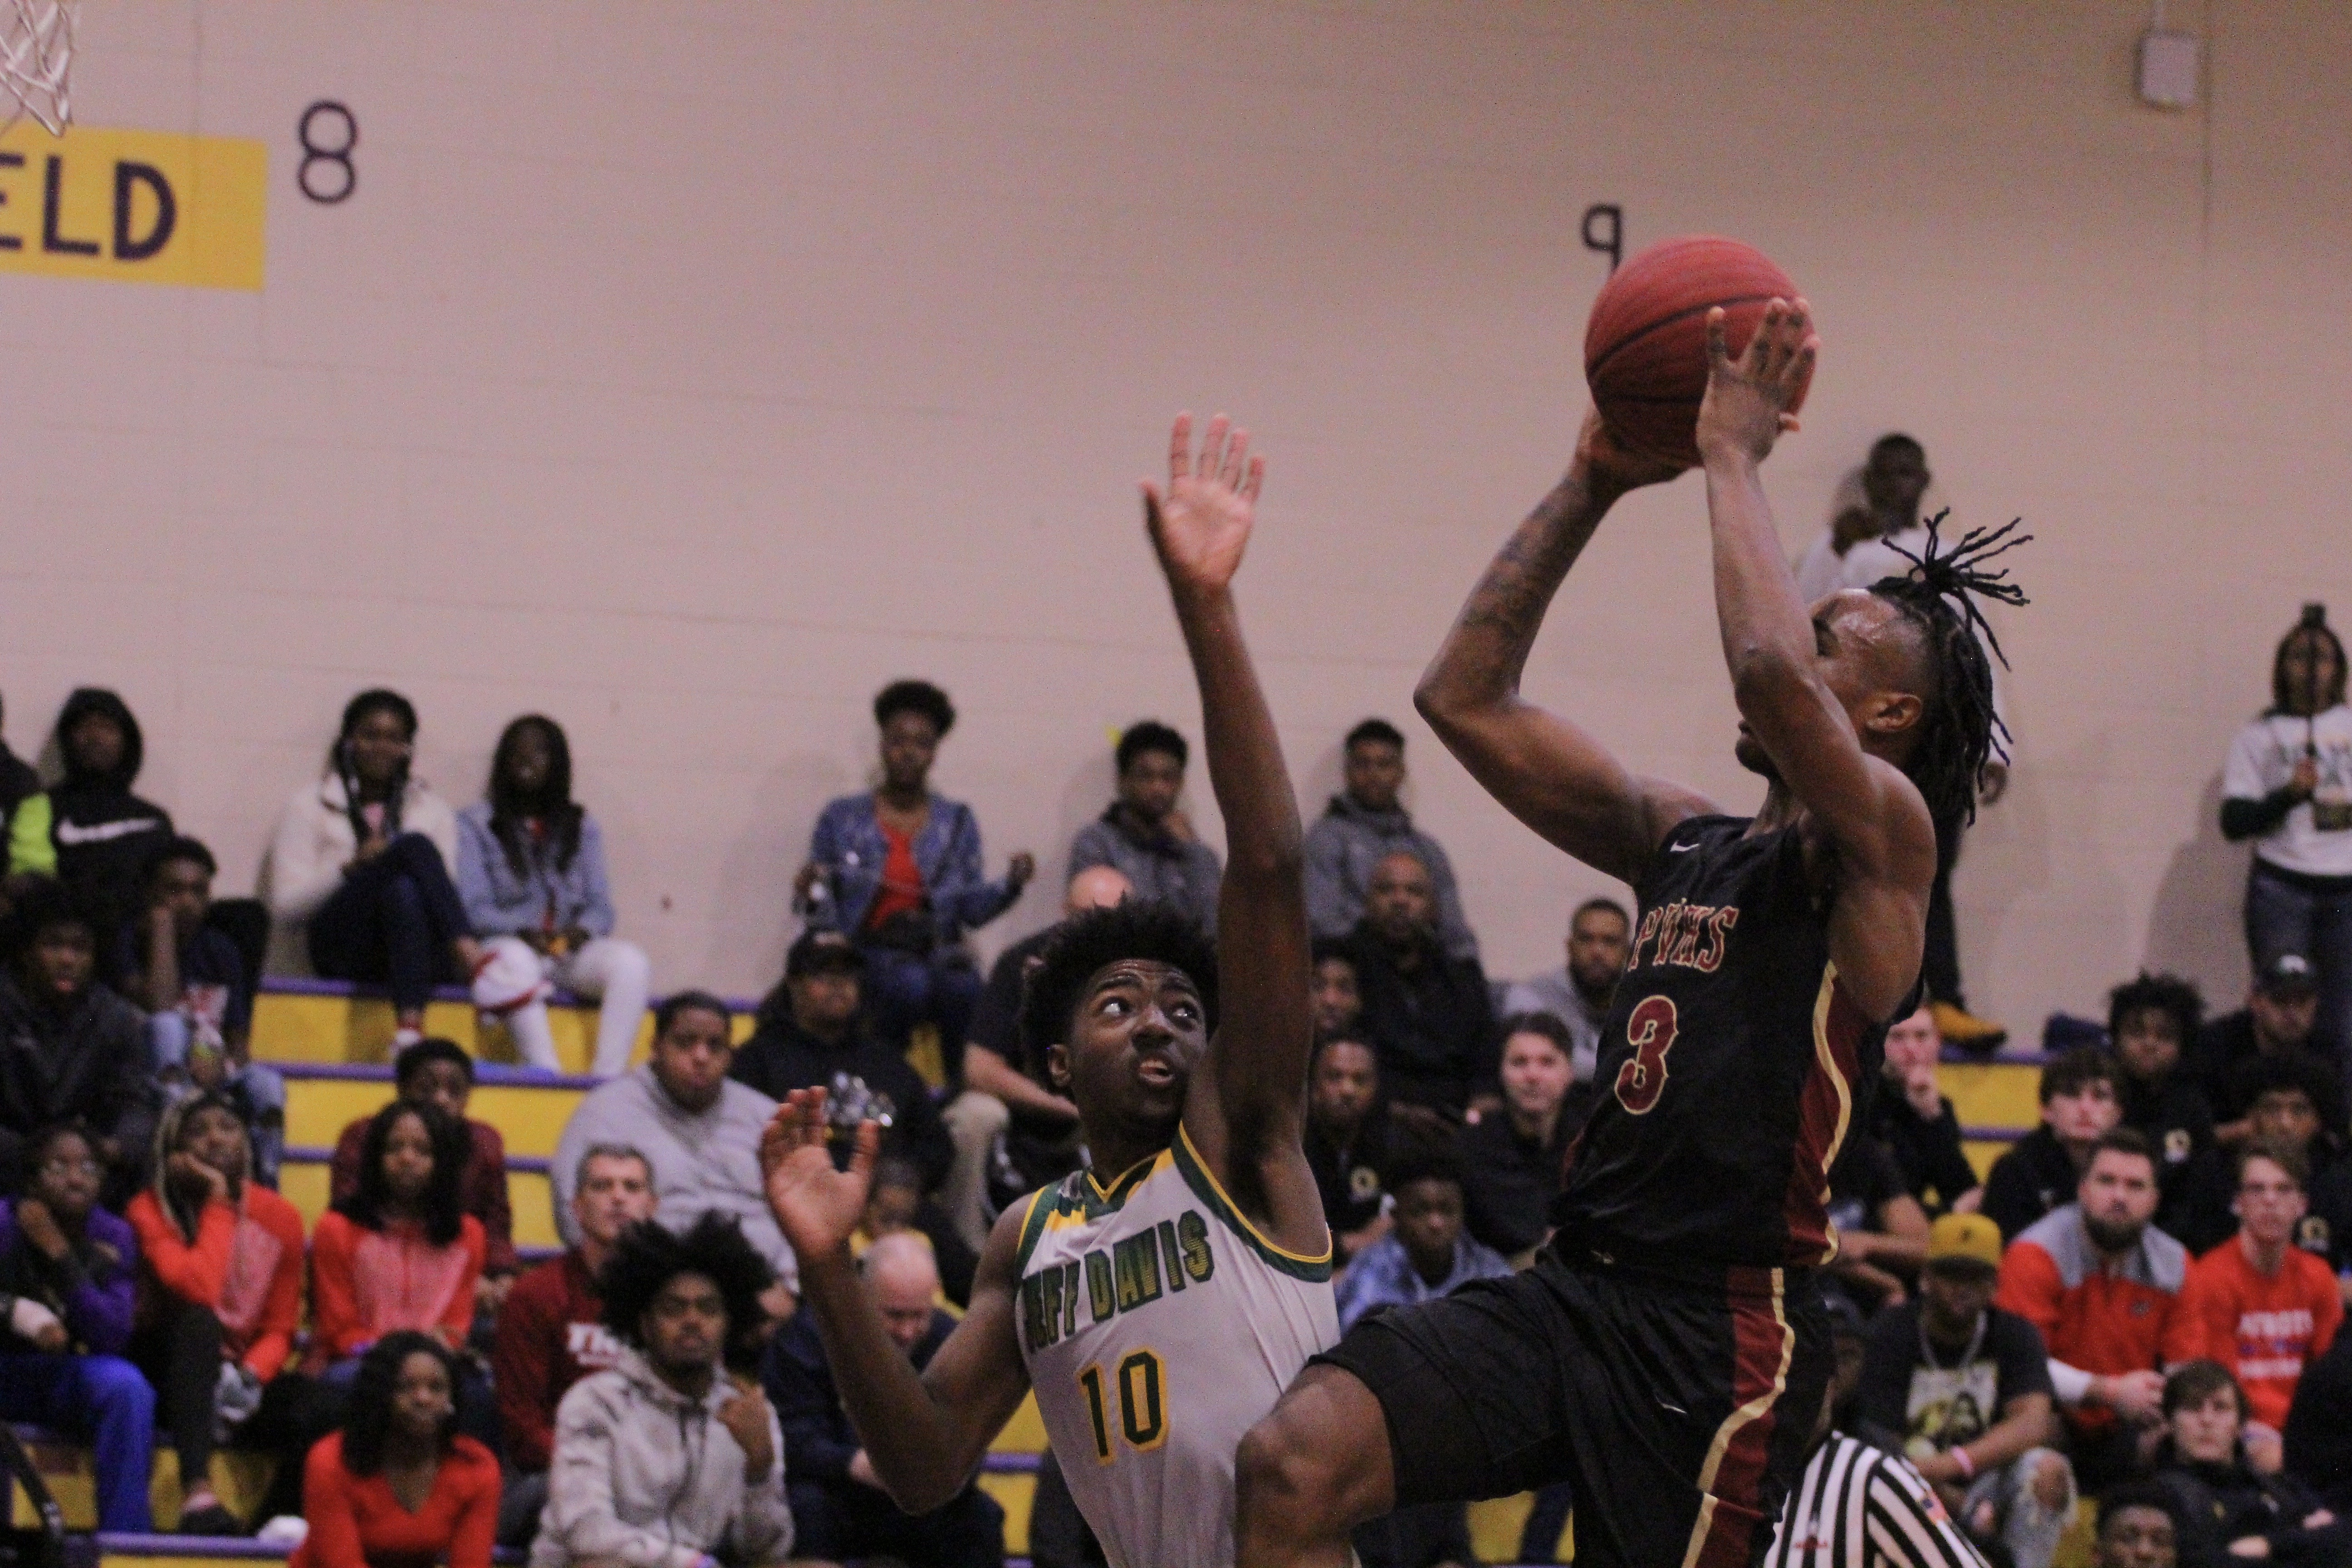 Pinson Valley's Kam Woods becomes one of the nation's top scorers